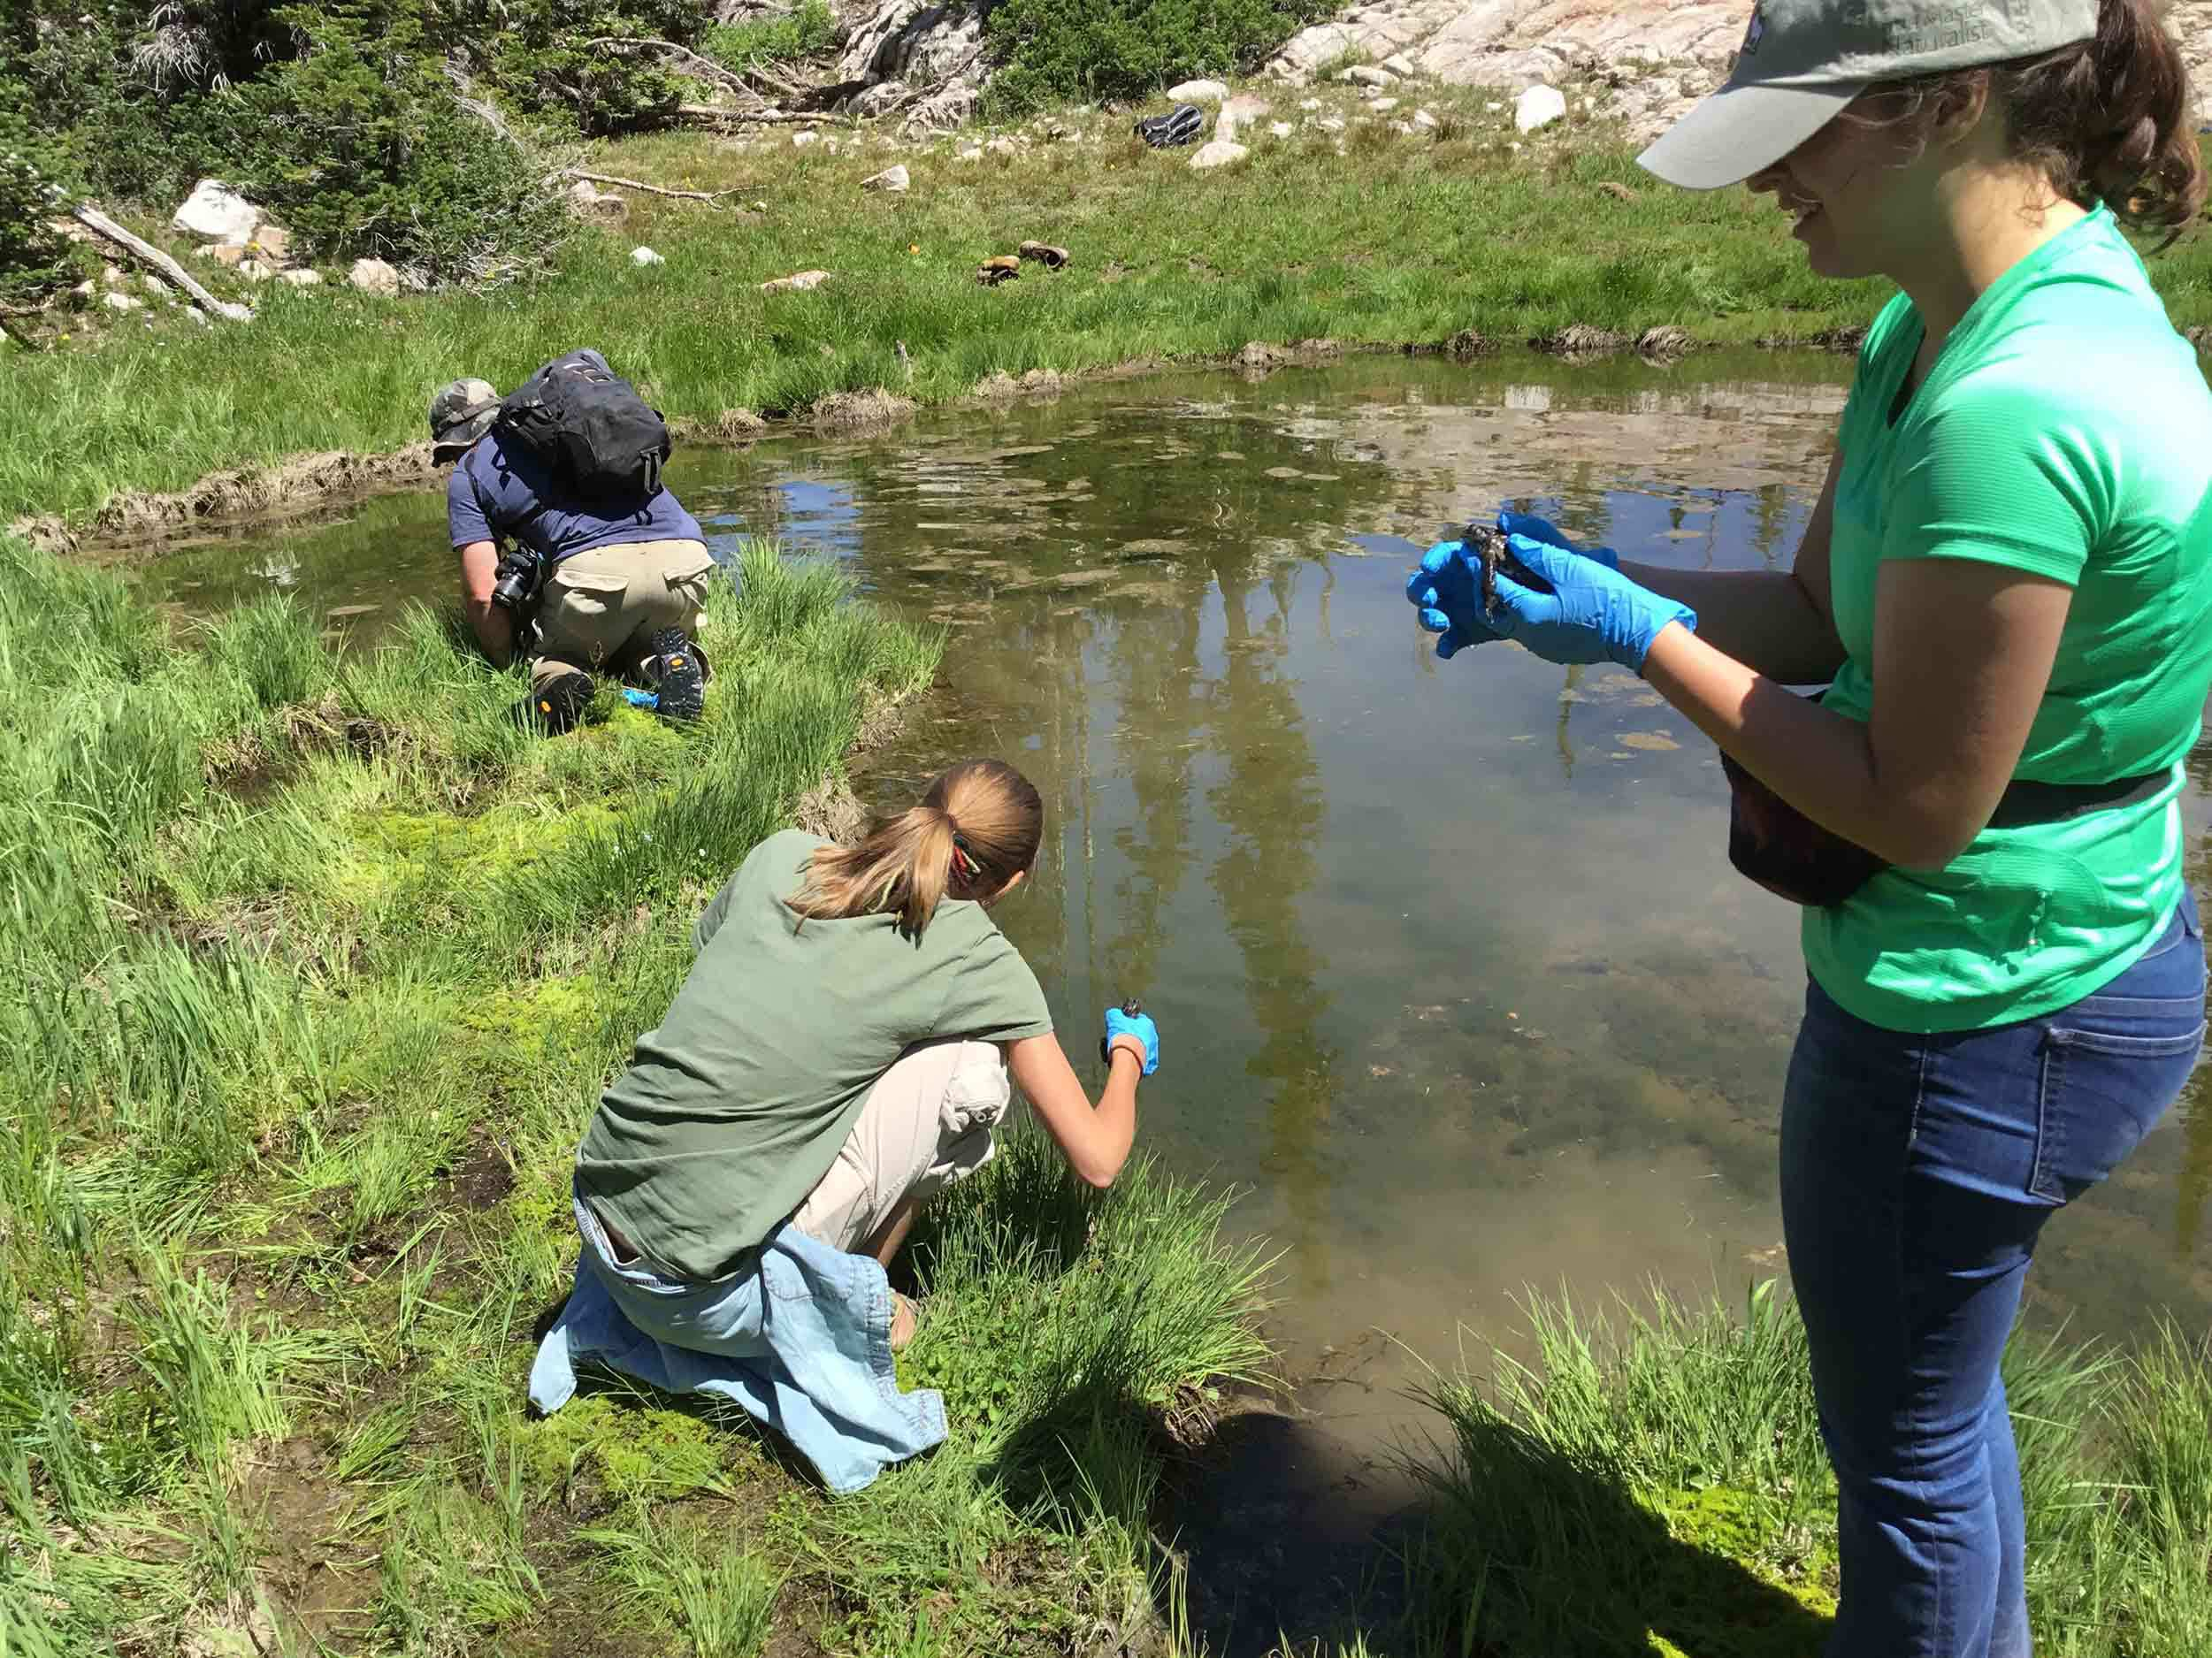 Utah's Hogle Zoo searching for boreal toads